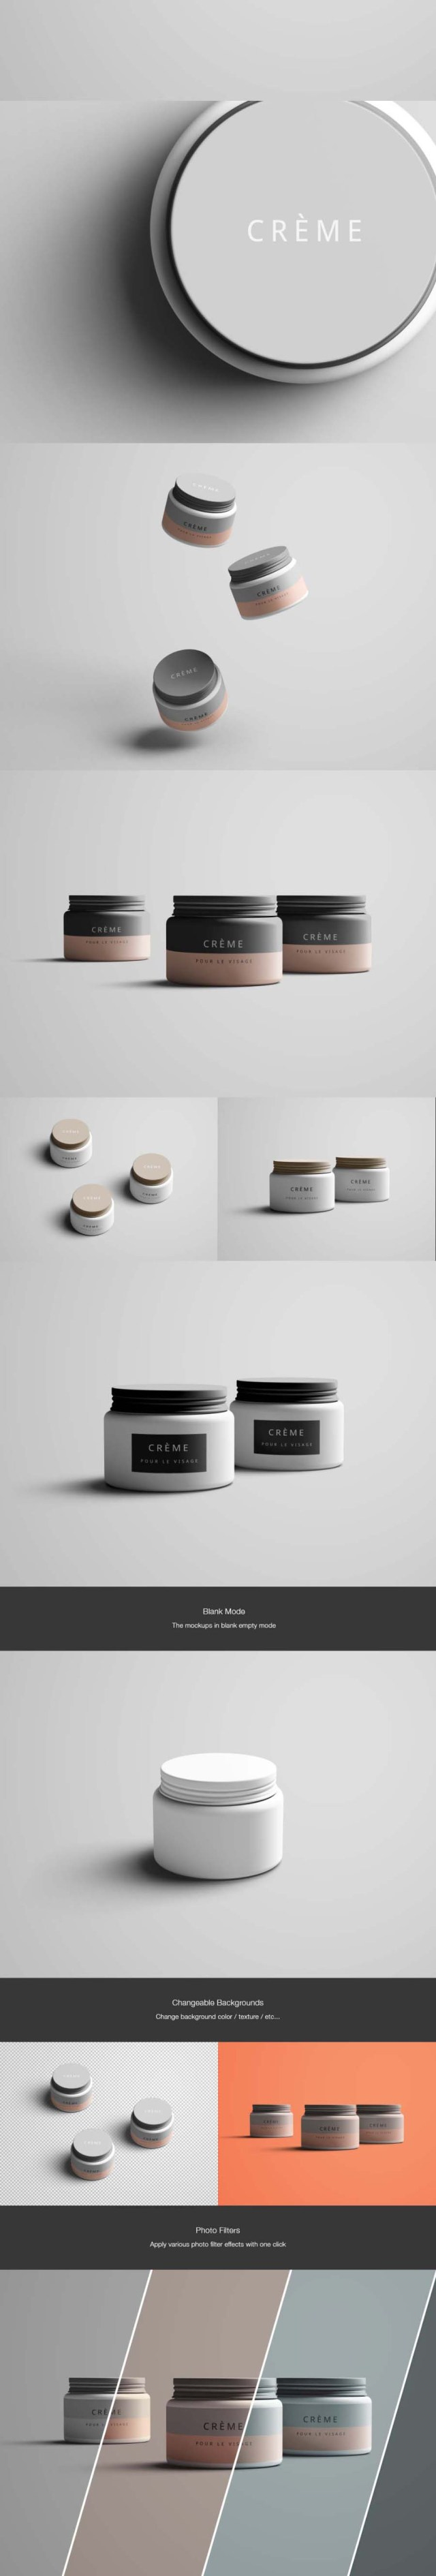 Jar Mockup Free Version